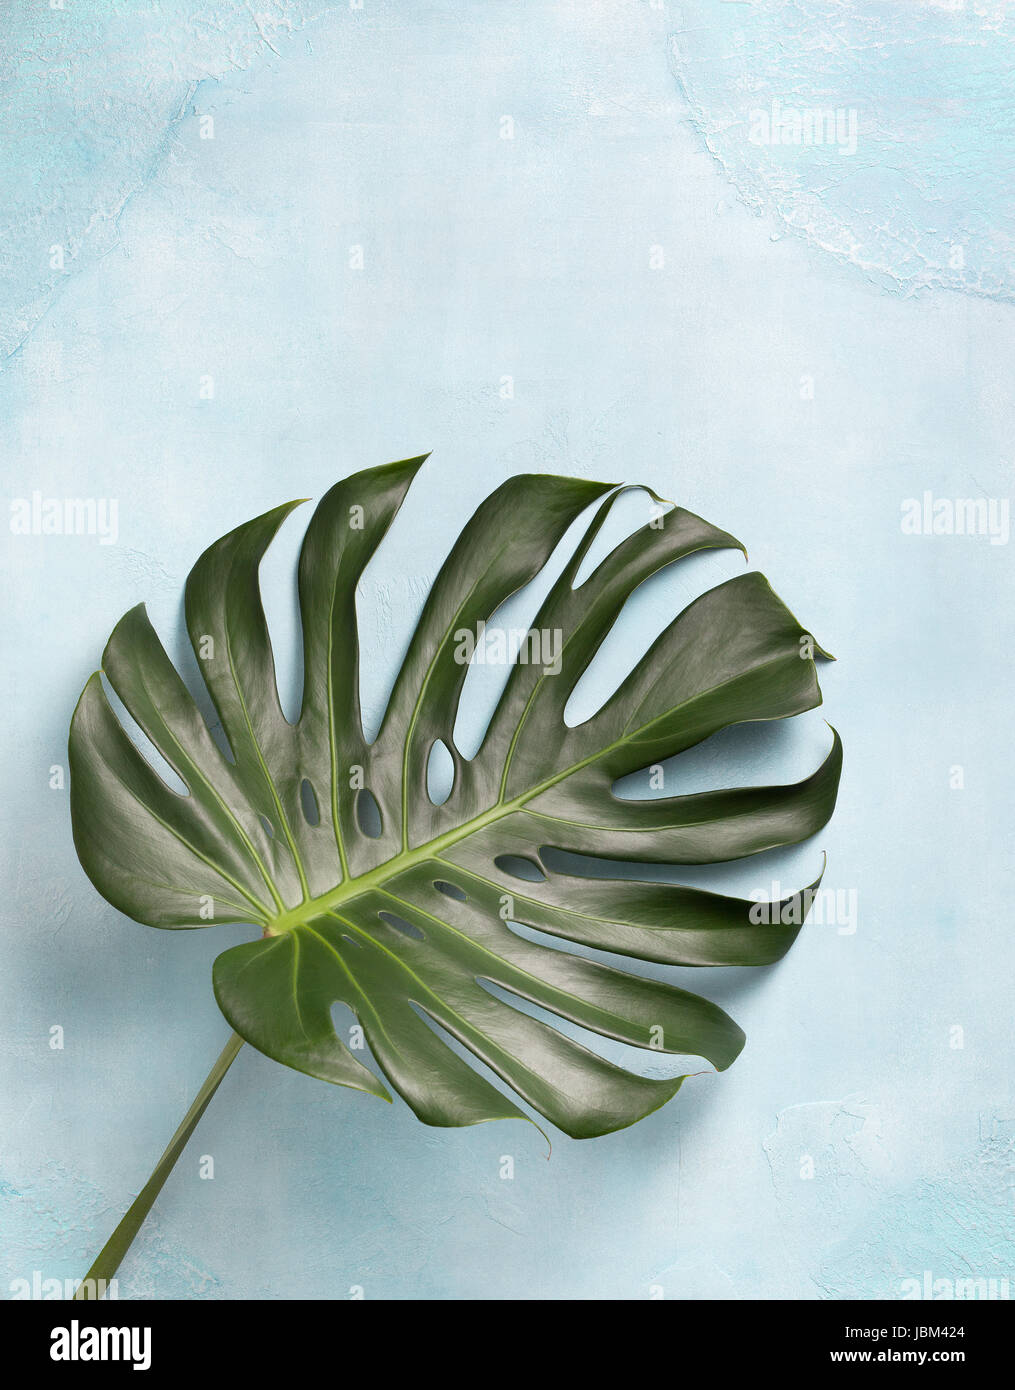 monstera leaf on a blue background concrete. view from above - Stock Image